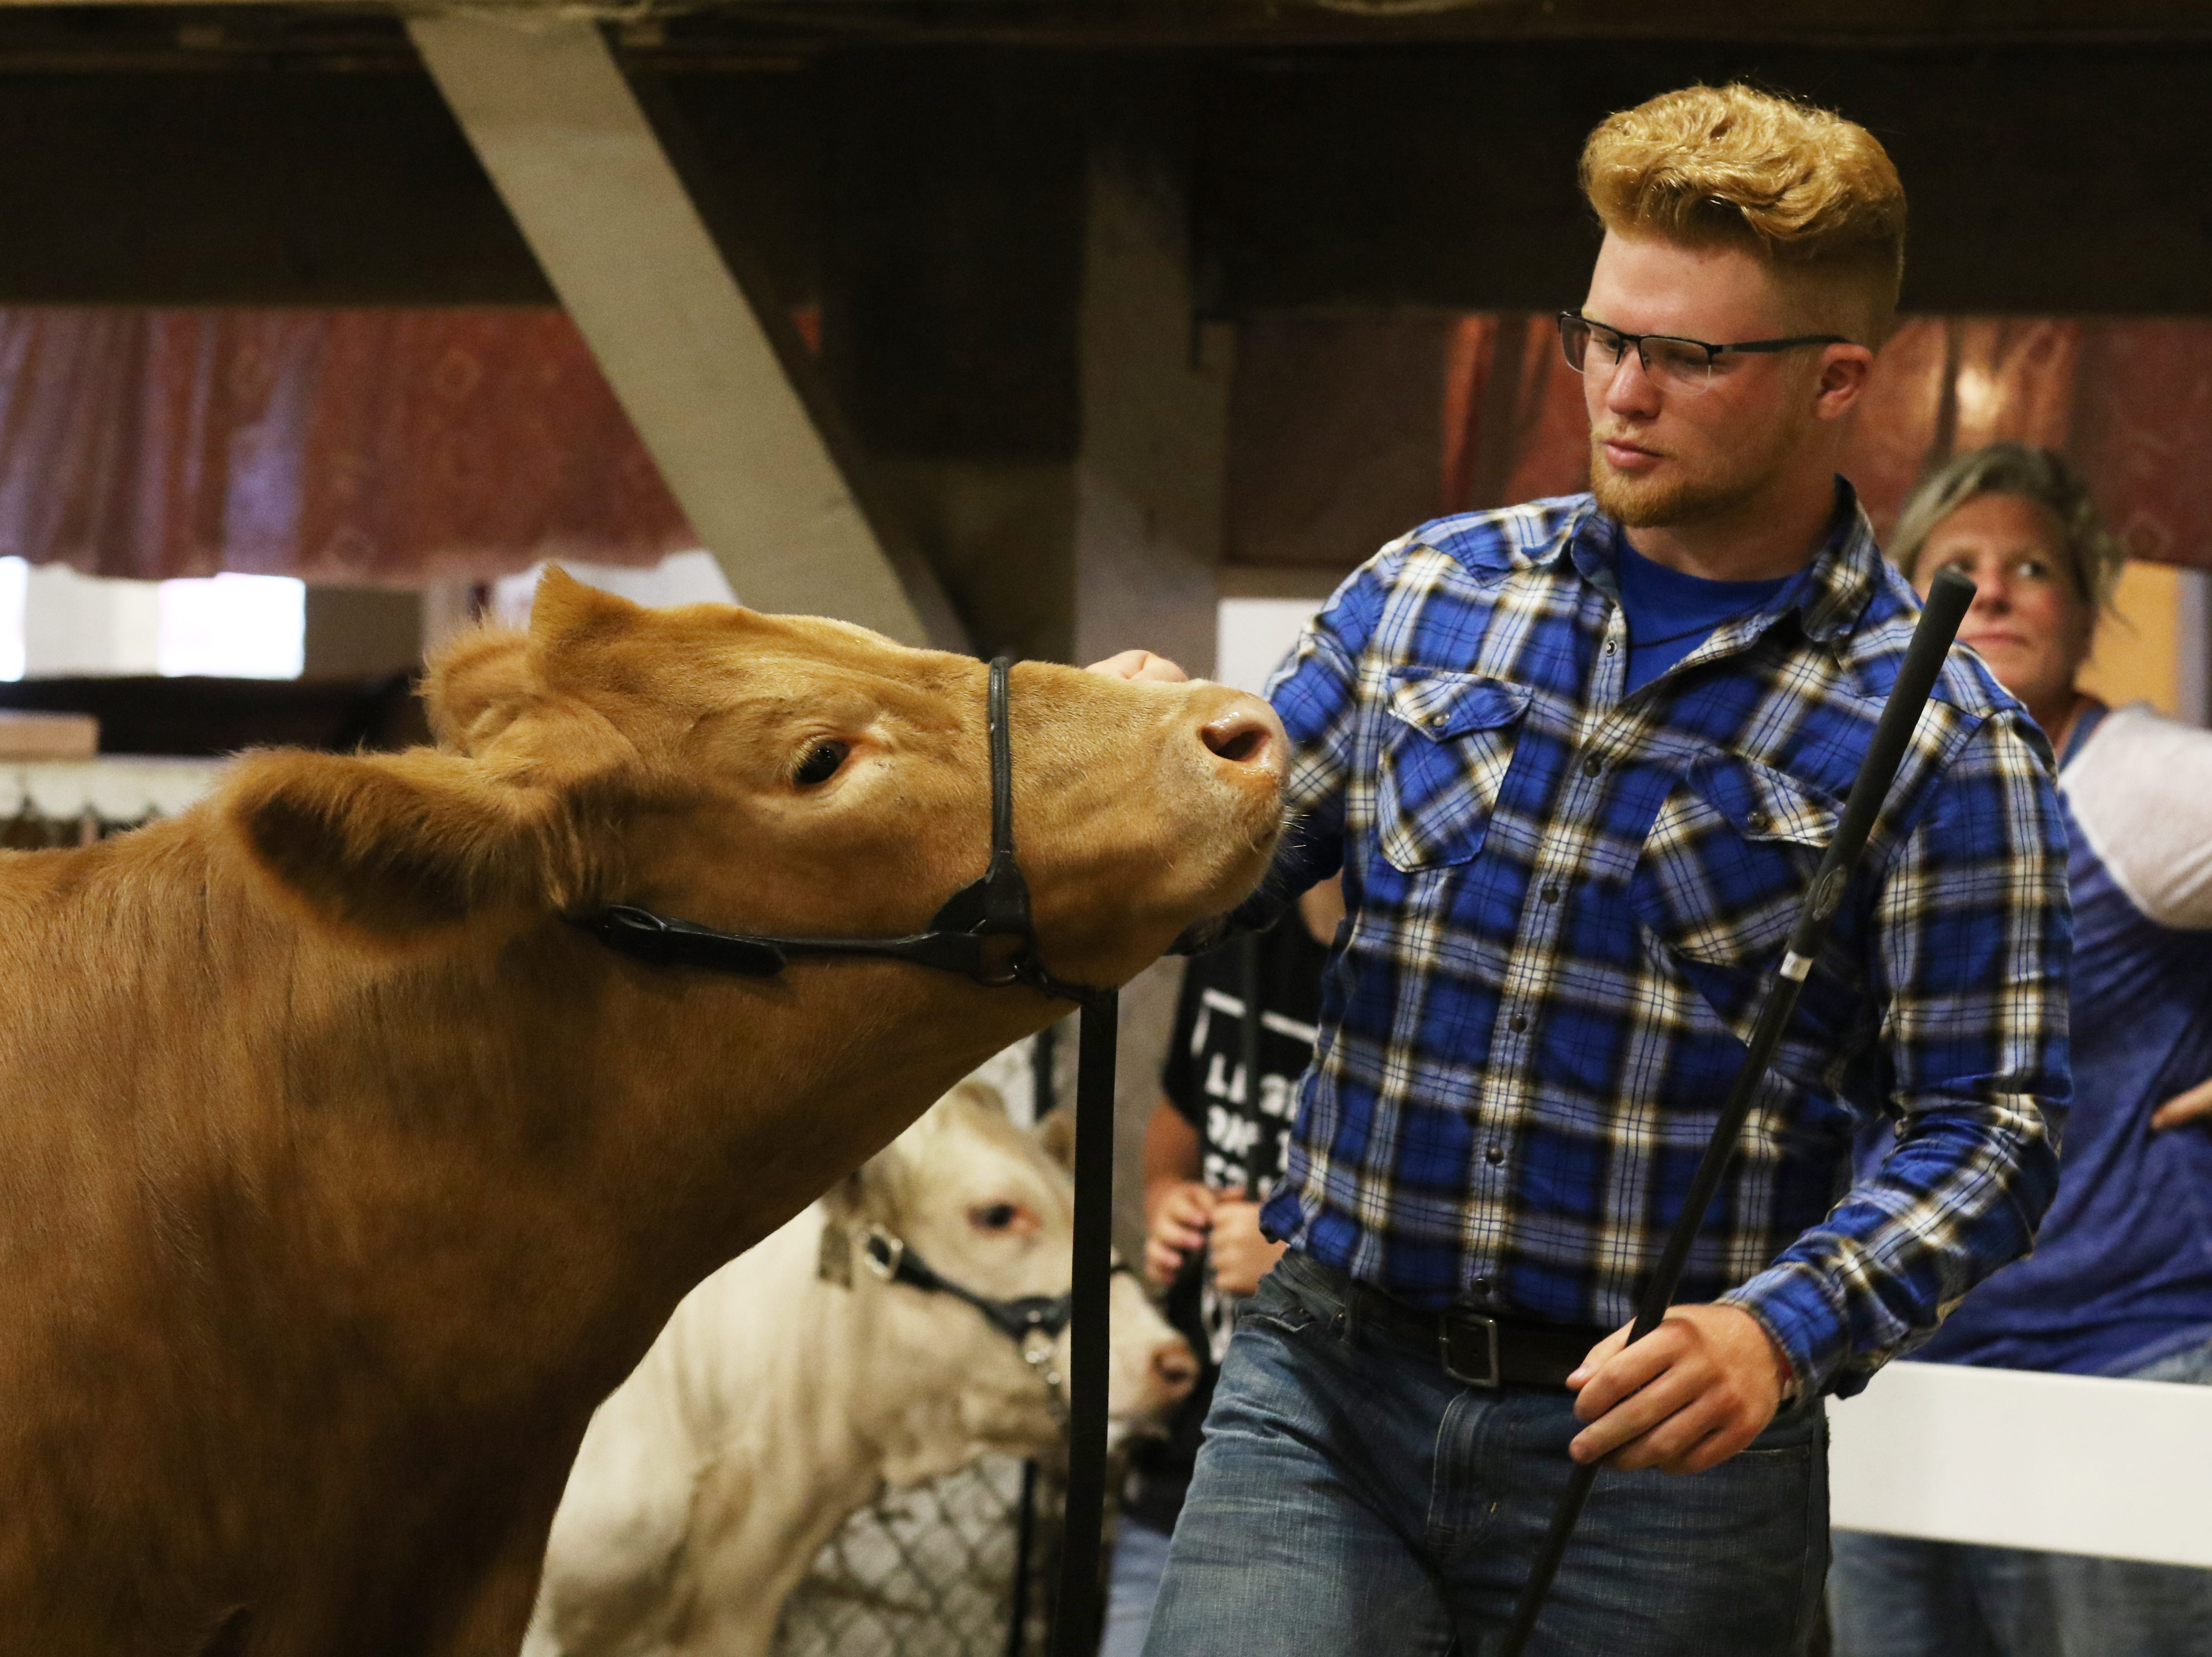 Tyler McKenzie shows a steer during the Showman of Showmen competition at the Muskingum County Fair on Friday.